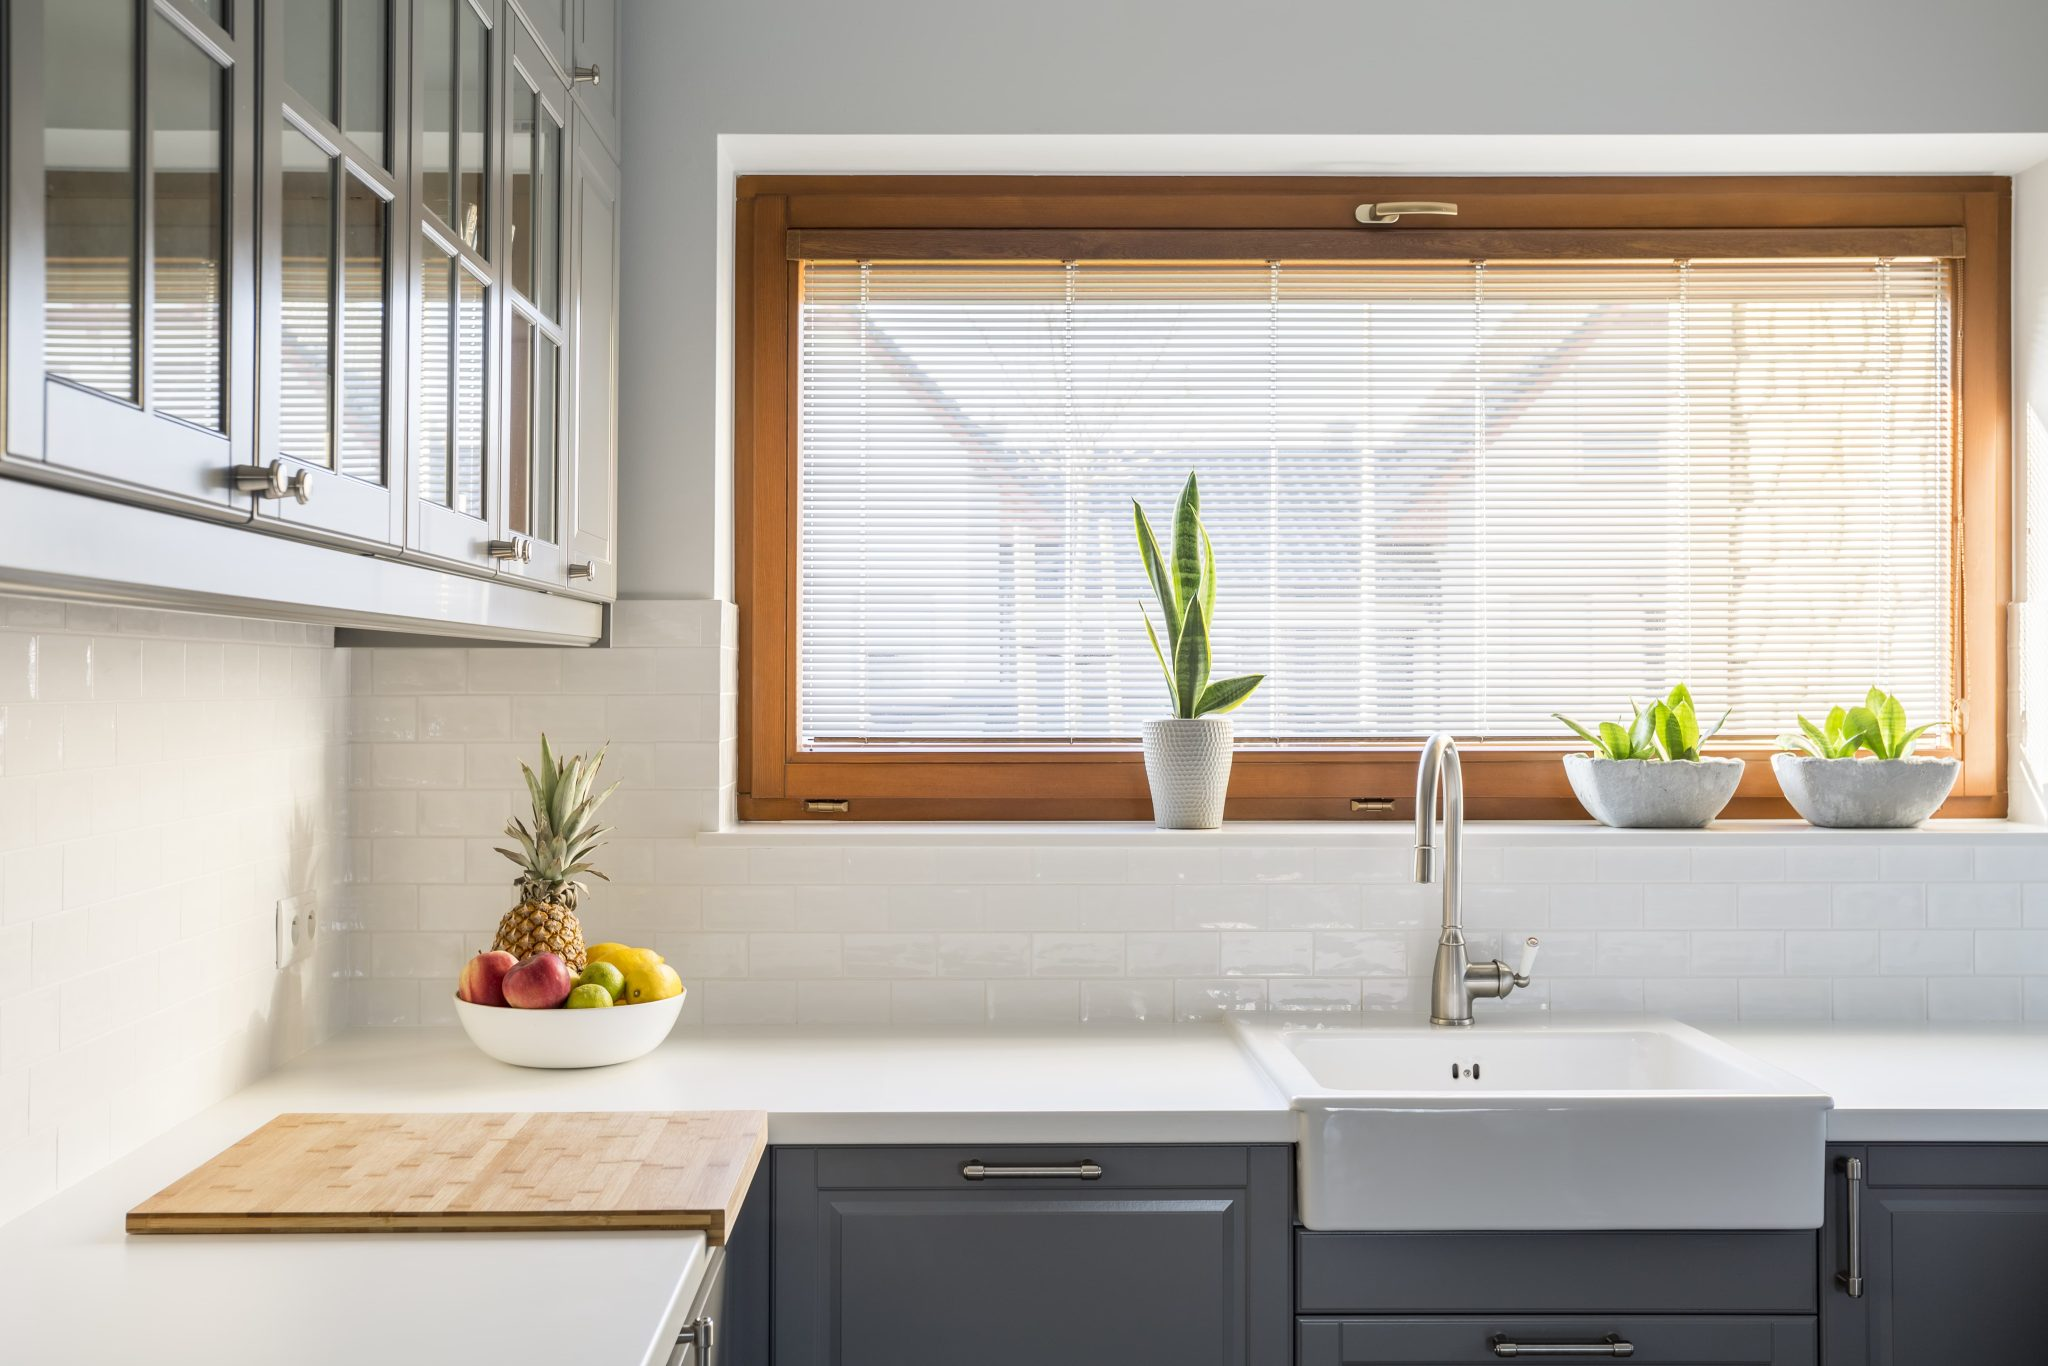 What to consider when buying countertops